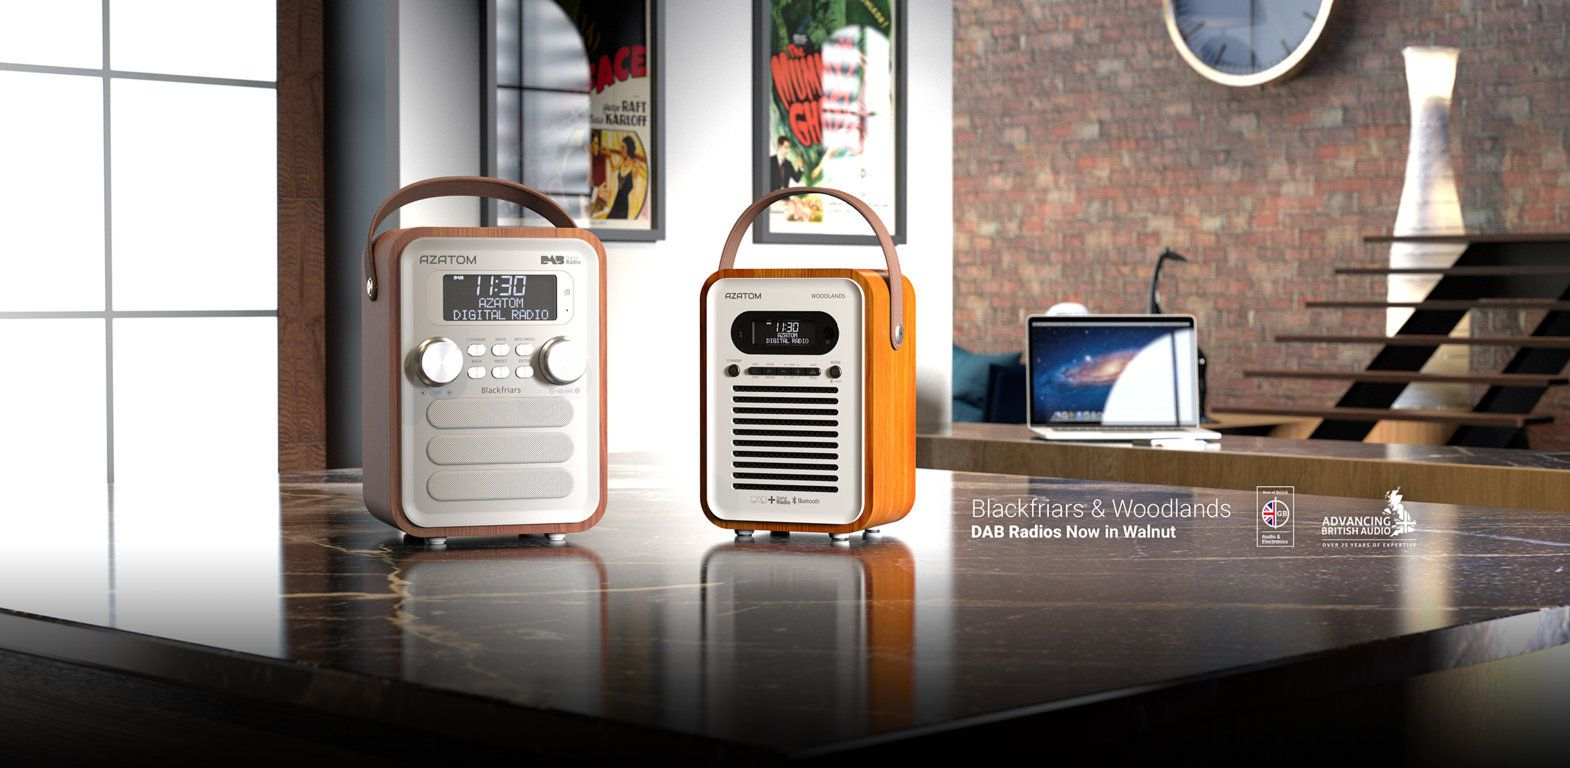 Blackfriars and Woodlands DAB Radios now in Walnut